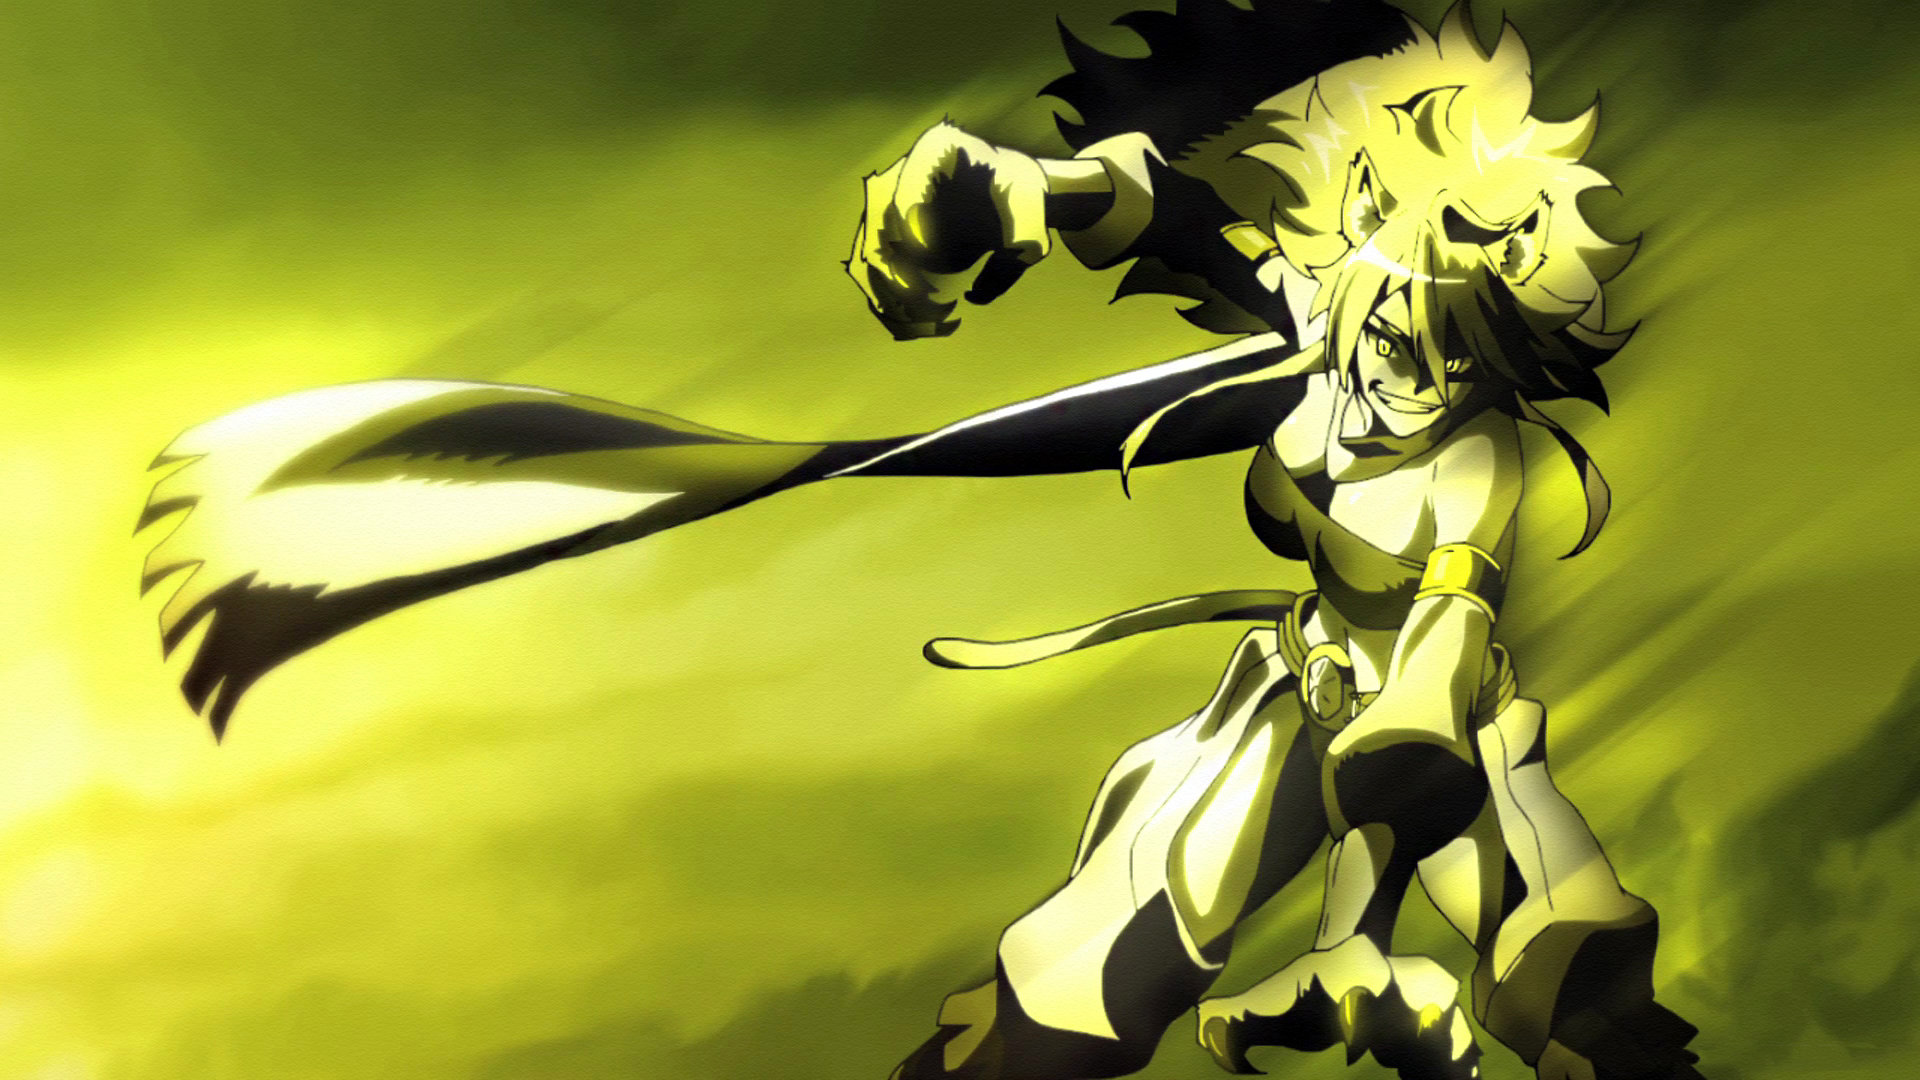 Download full hd 1920x1080 Akame Ga Kill! PC background ID:207992 for free